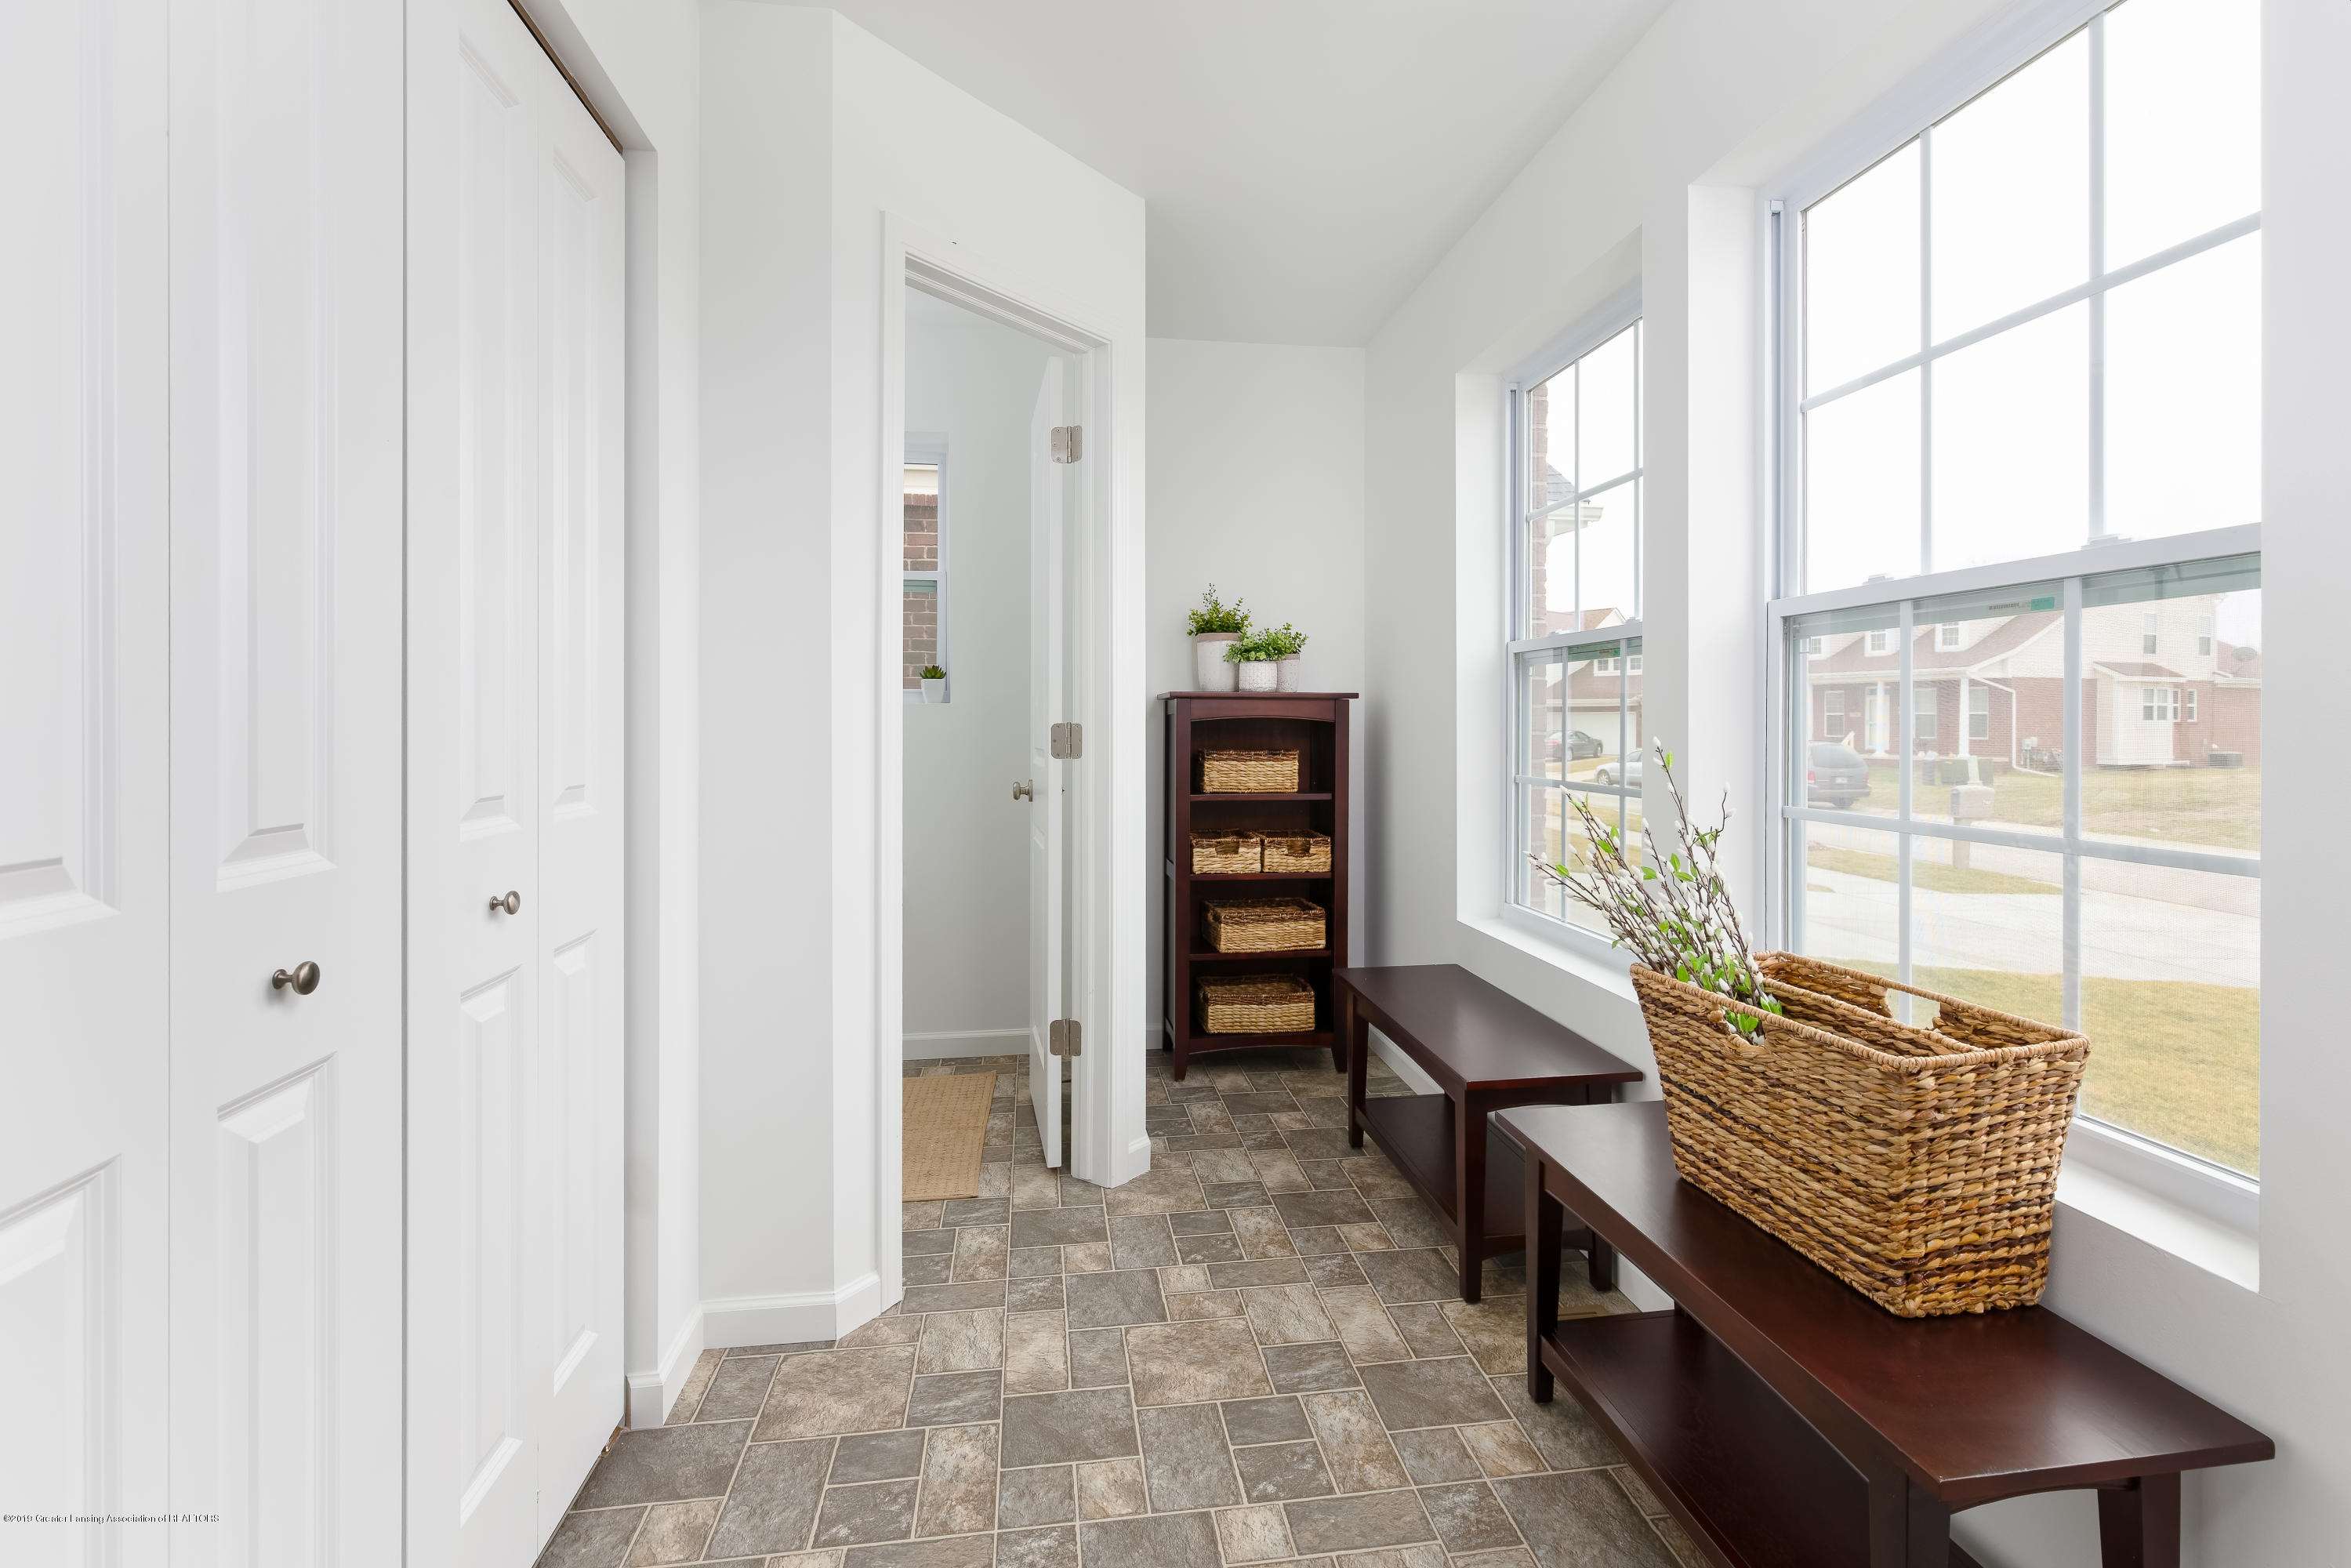 6482 Firefly Dr - Entry TSP077-E2070-Staged-8 - 6